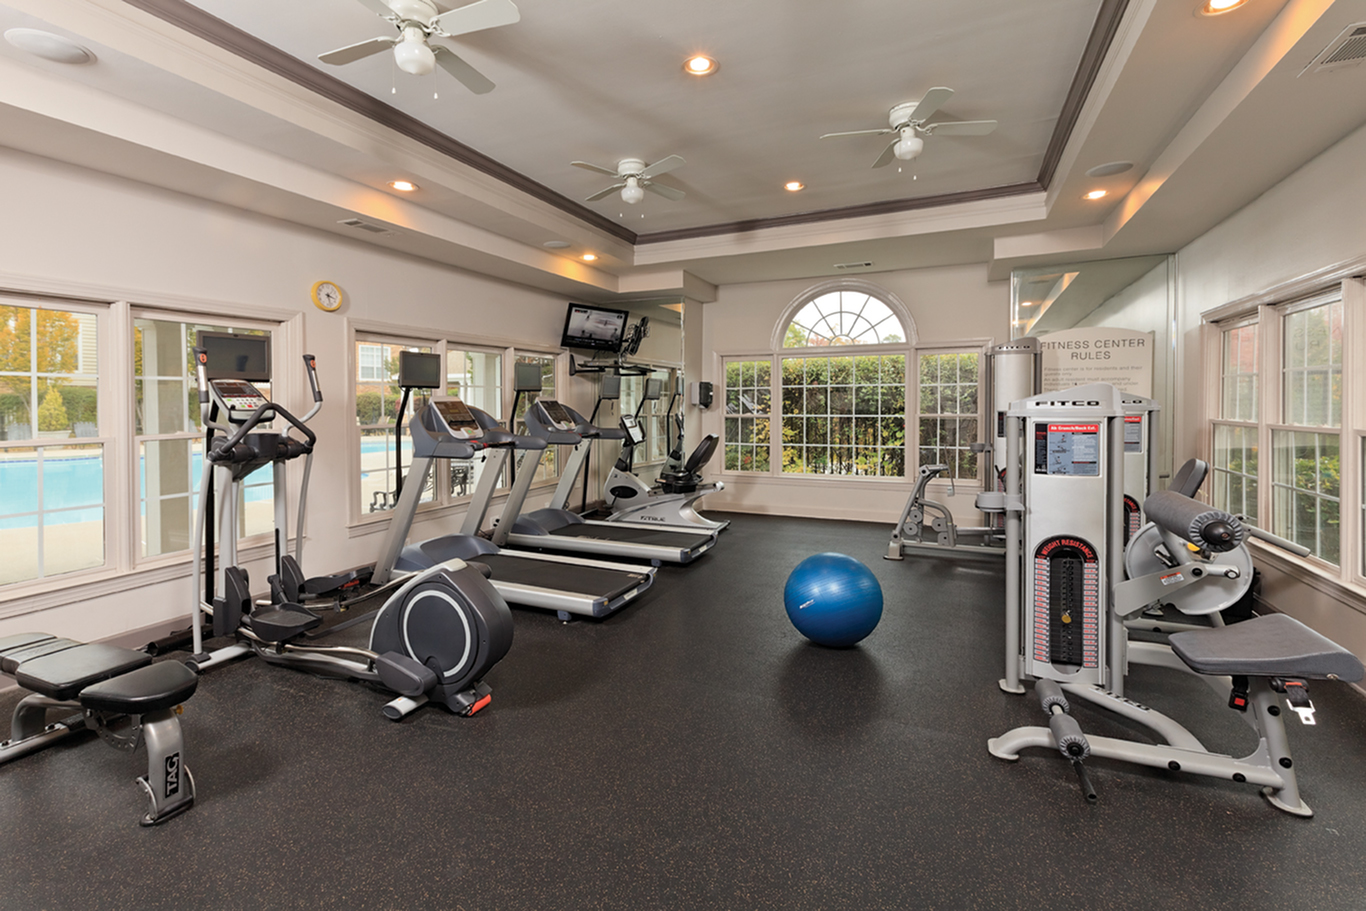 Image of 24 Hour Fitness Gym for Parc at Perimeter